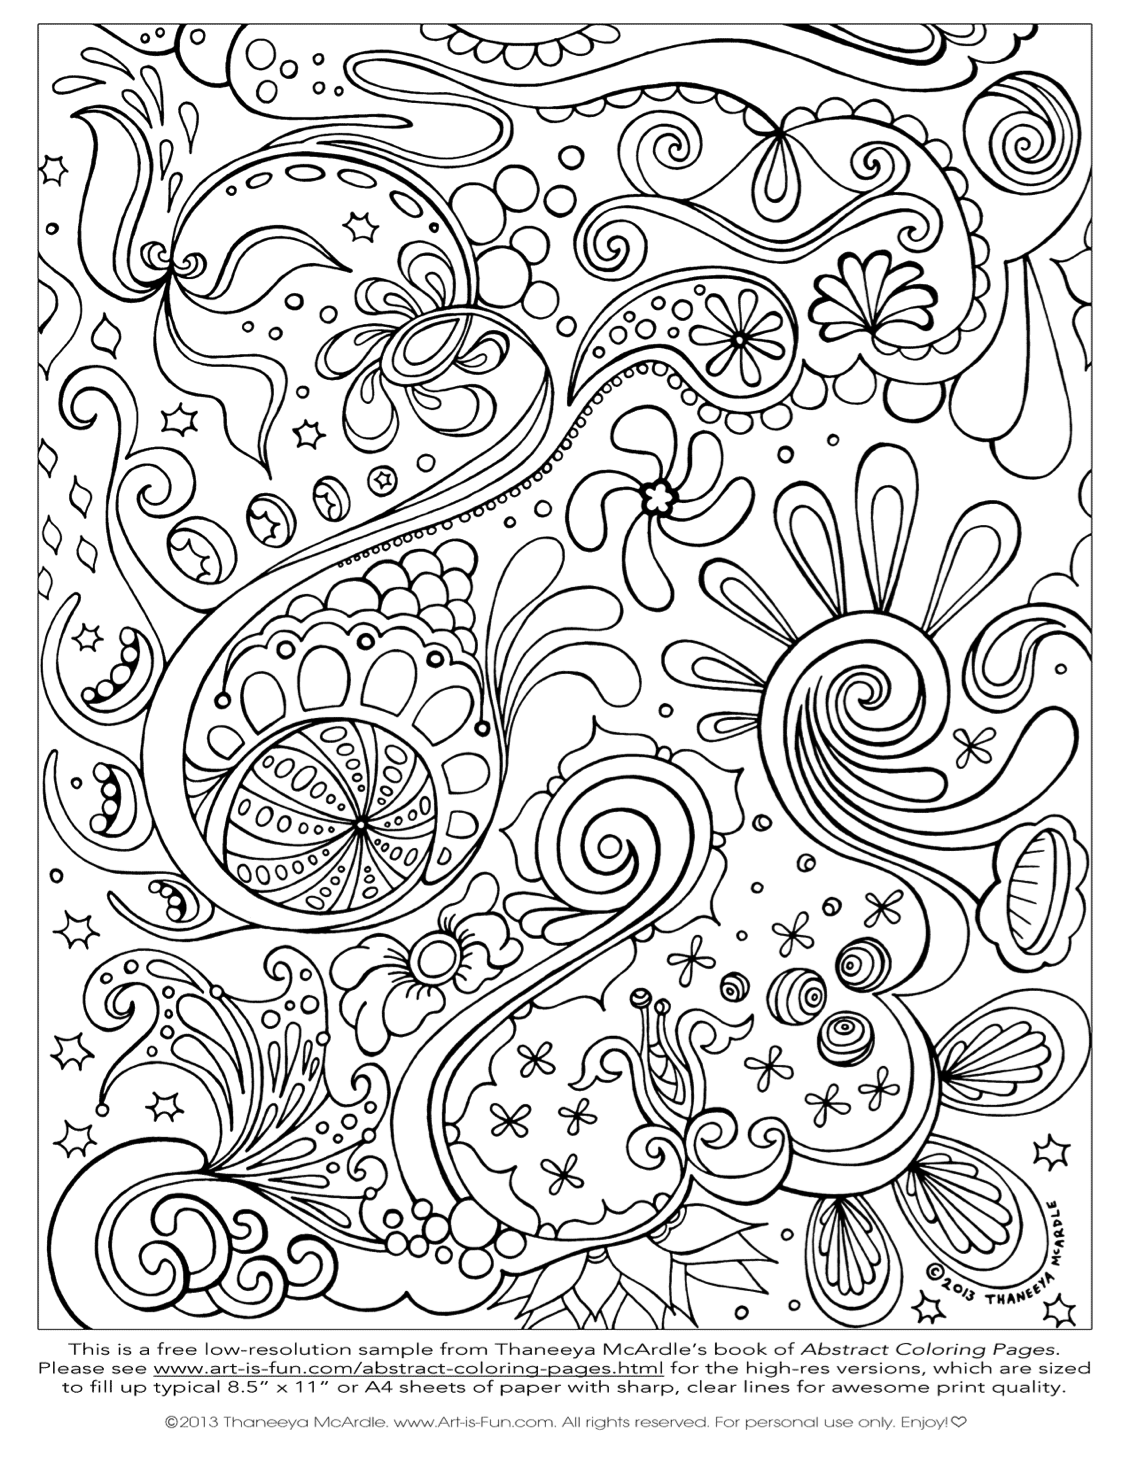 Kleurplaten Voor Volwassenen Google Zoeken Abstract Coloring Pages Detailed Coloring Pages Free Coloring Pages